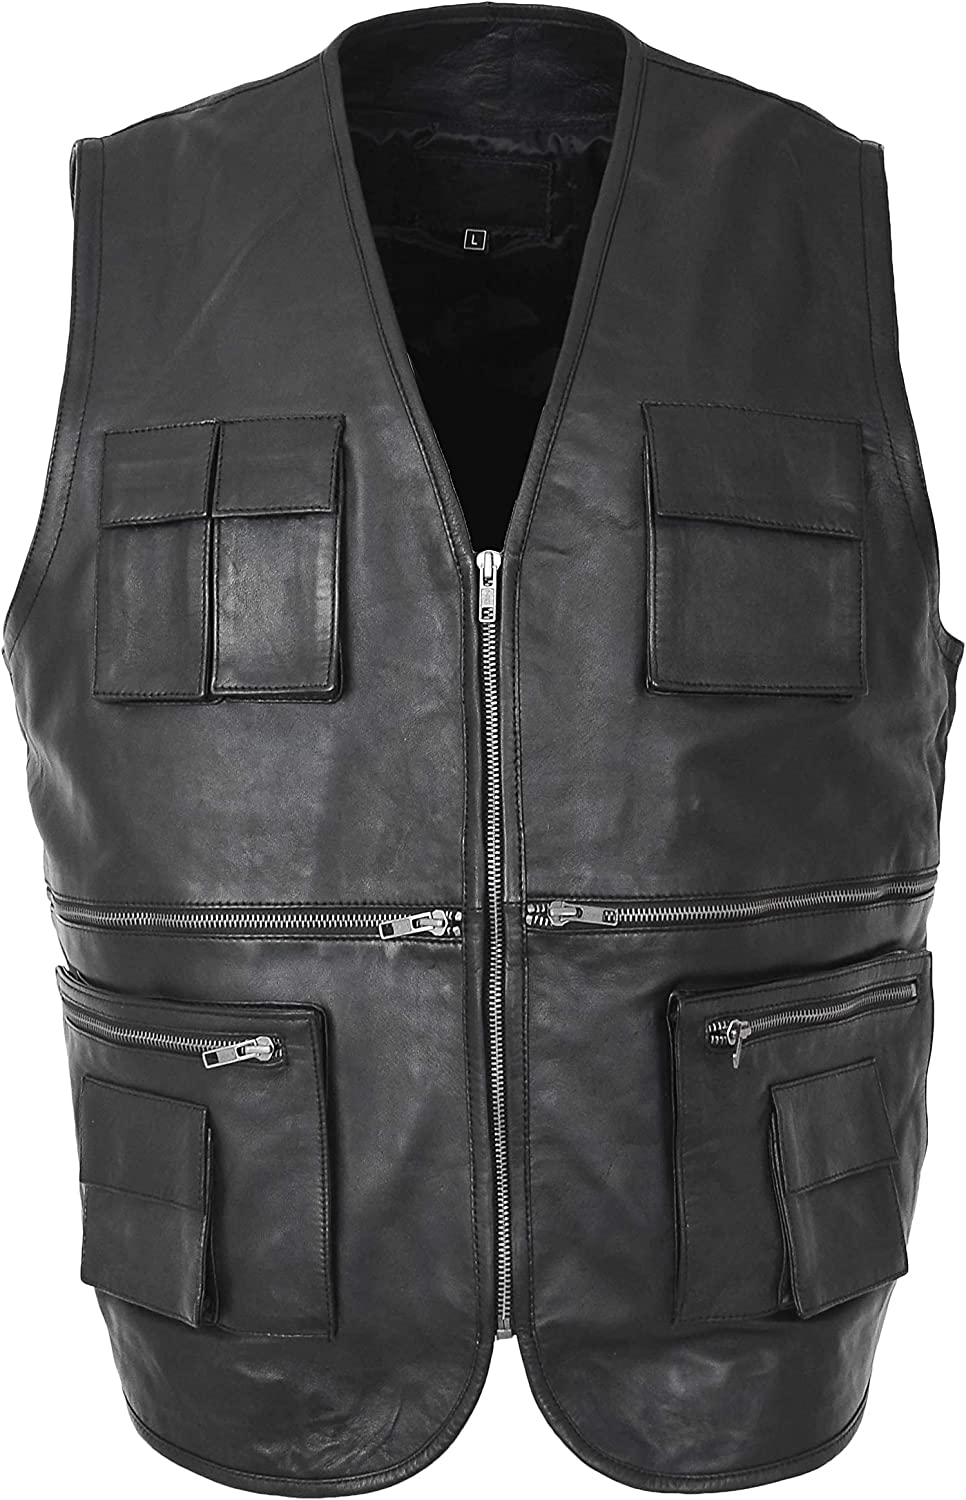 Mens Real Leather Waistcoat Fishing Hiking Outdoor Hunting Vest Gary Black